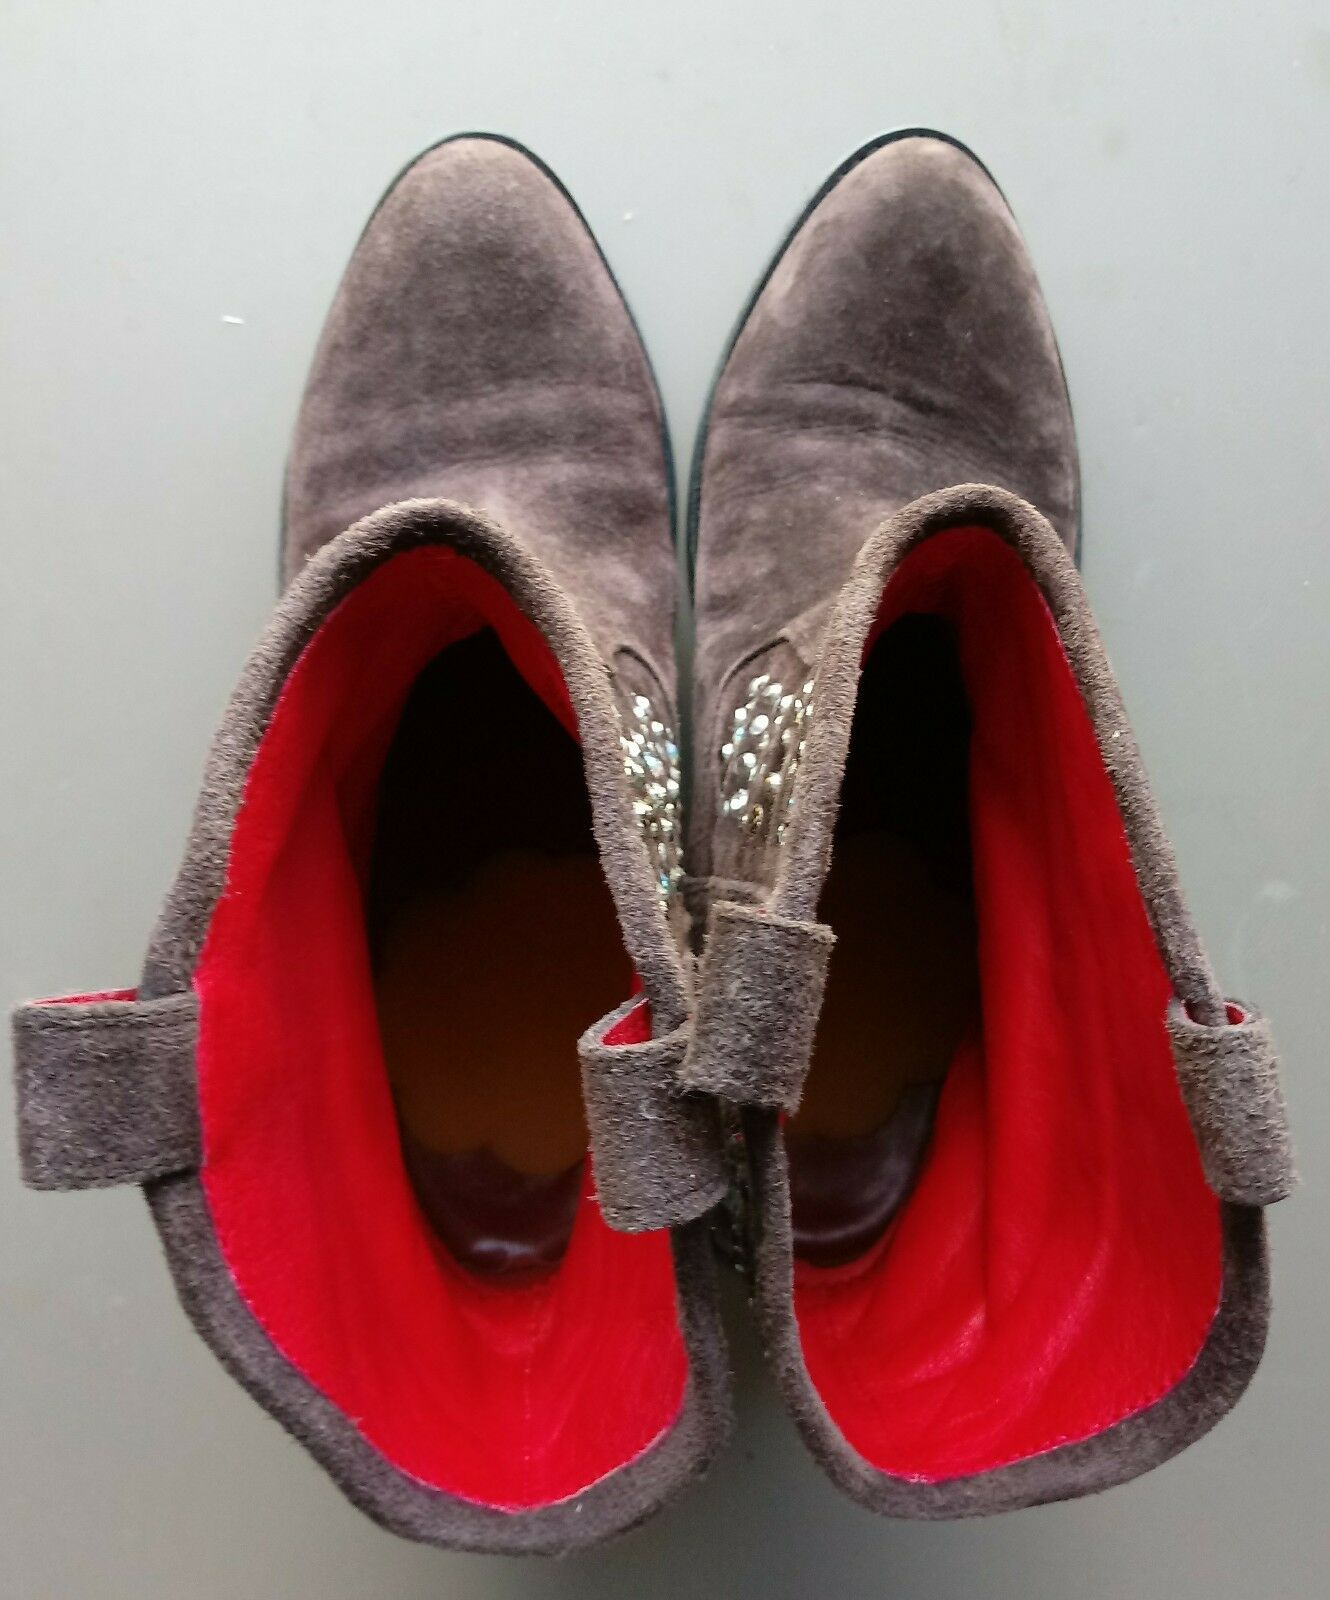 Beverly Feldman 1947 ALL LEATHER COW COW COW BOY Rhinestone brown suede Boots size 7B 794060